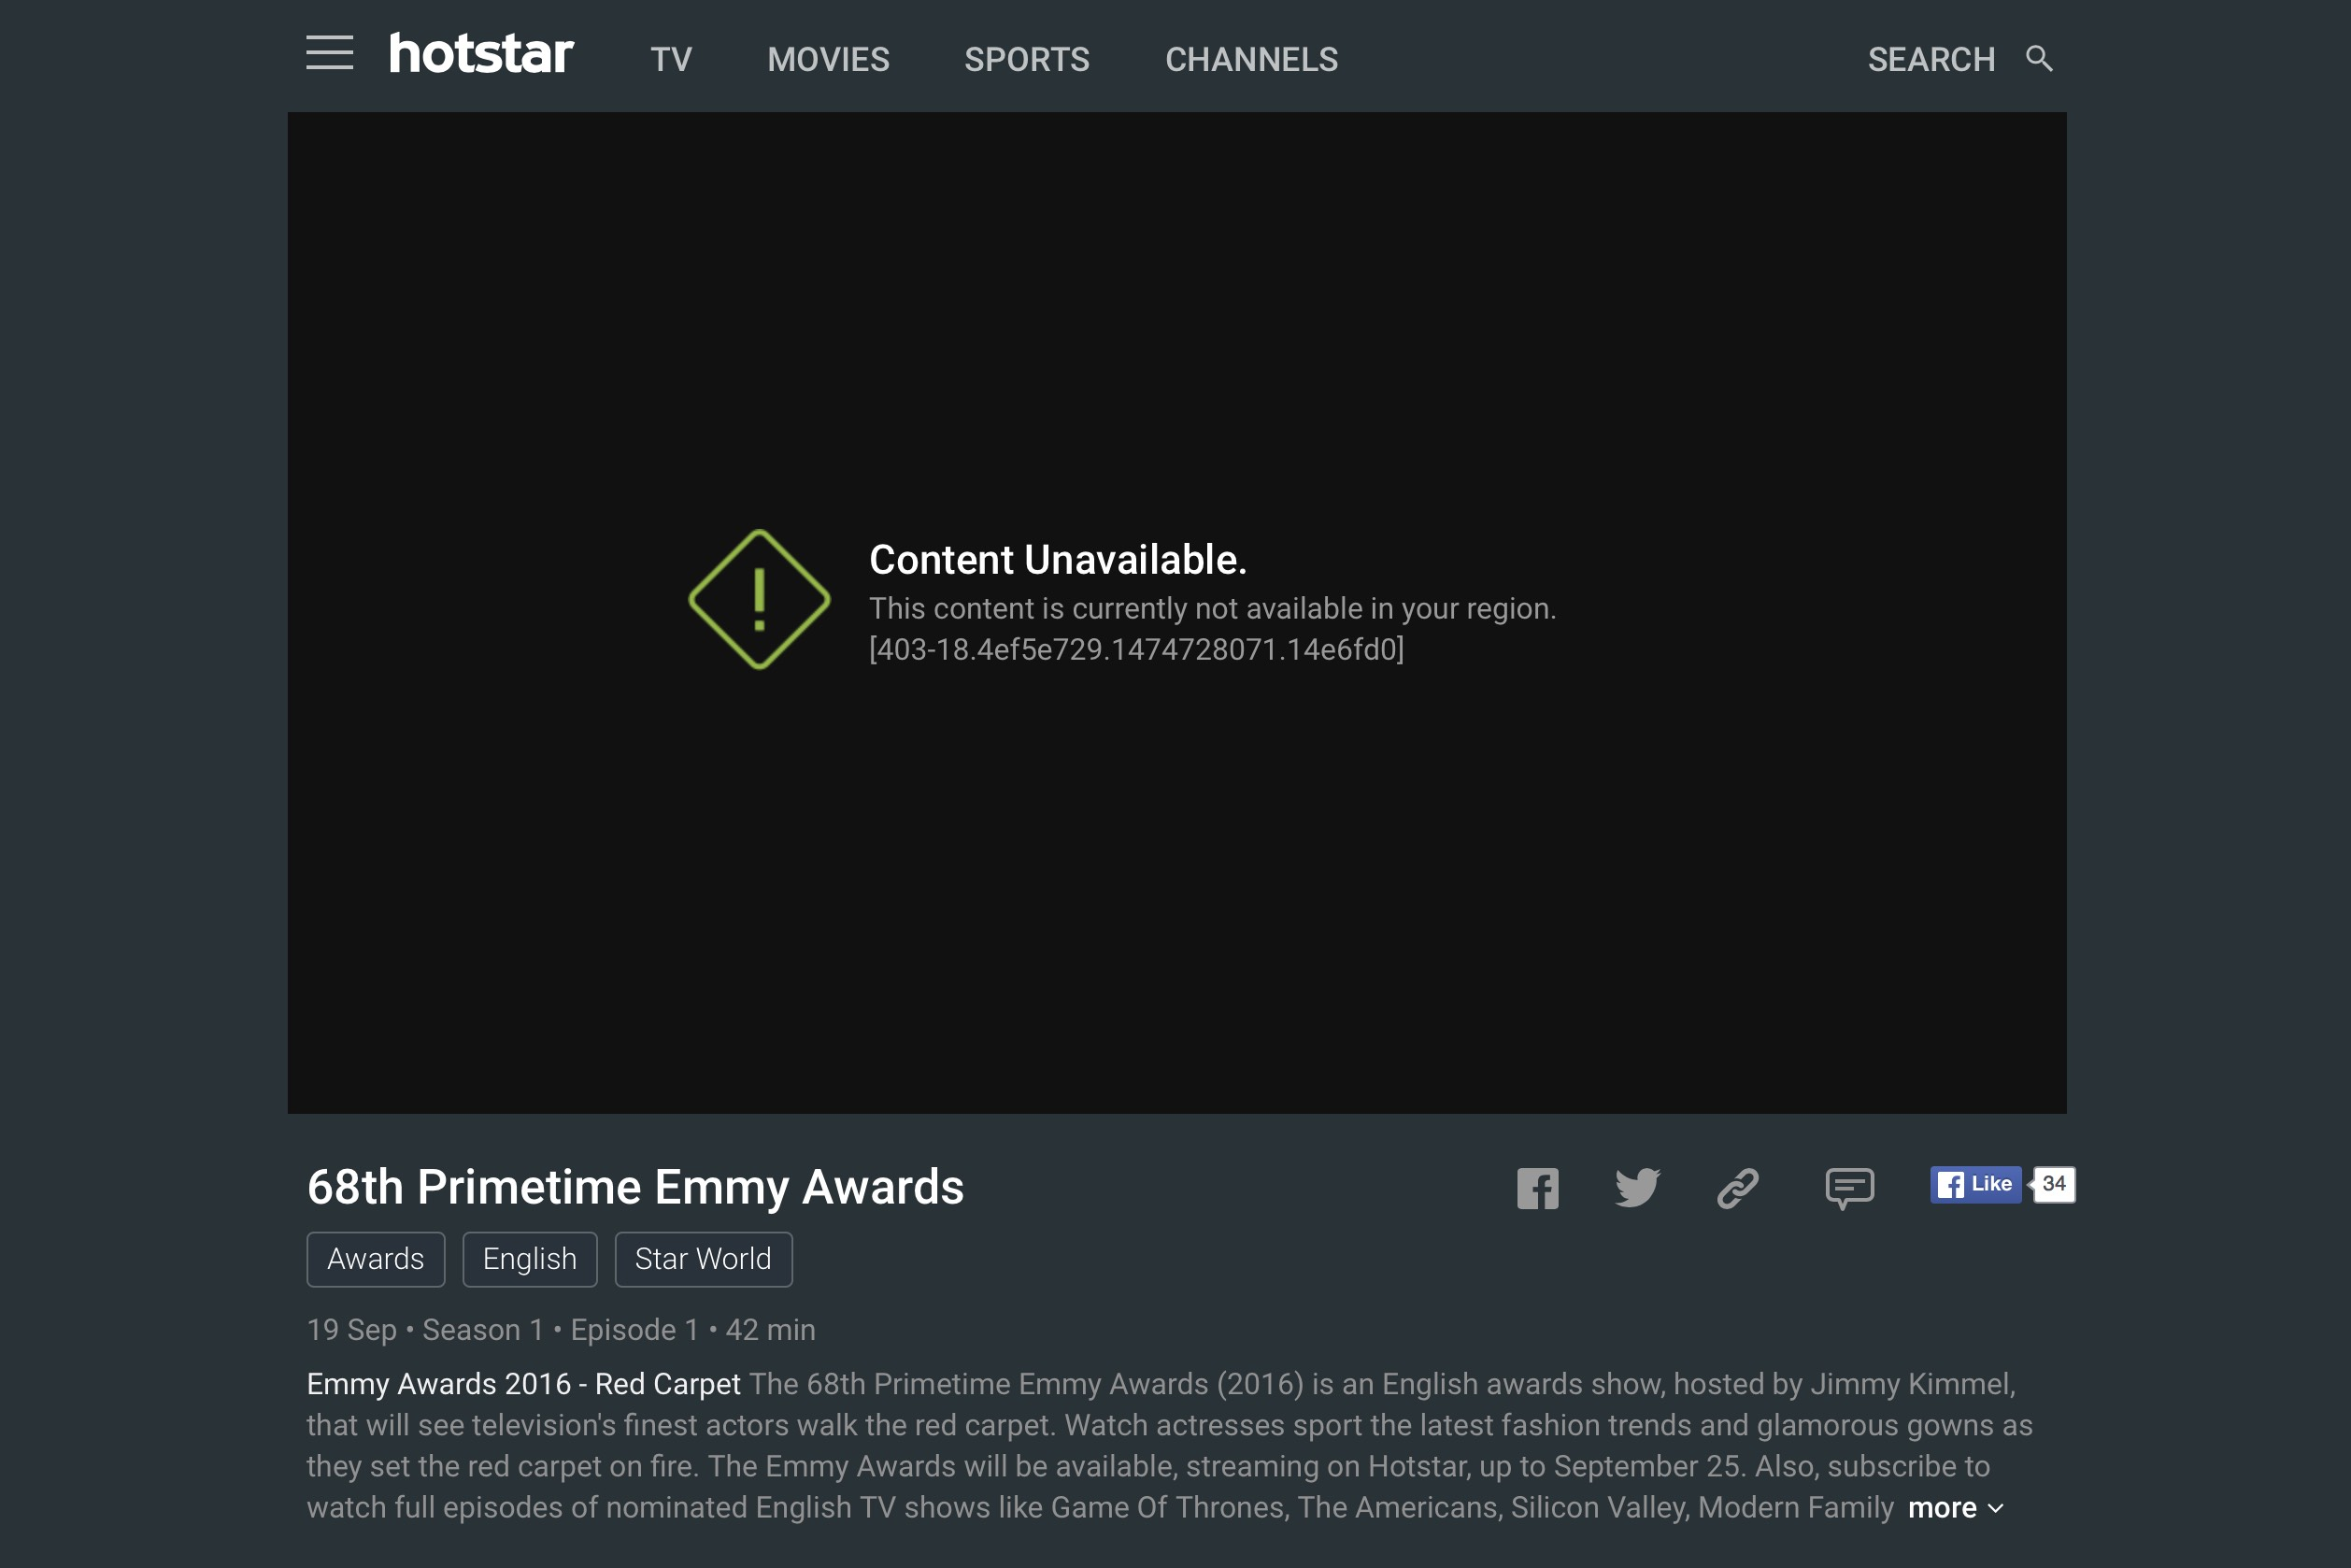 hotstar unblock live stream from US